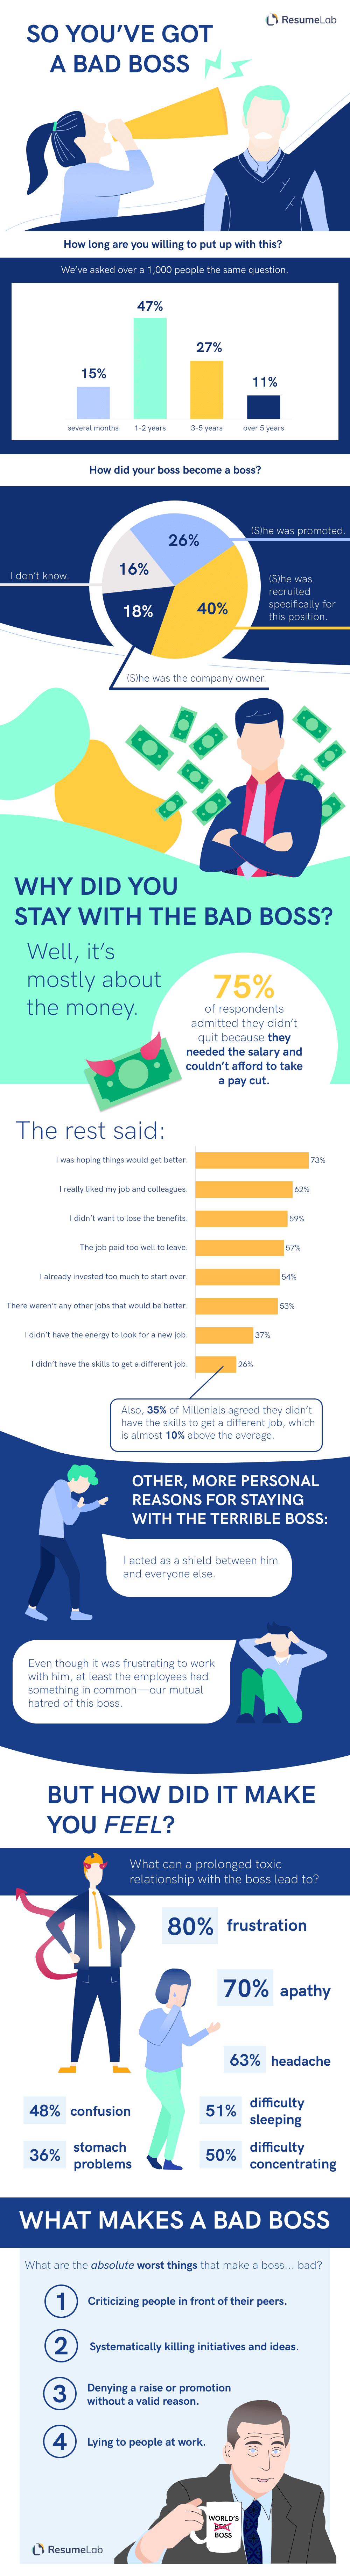 ResumeLab infographic on the impacts of having a bad boss.